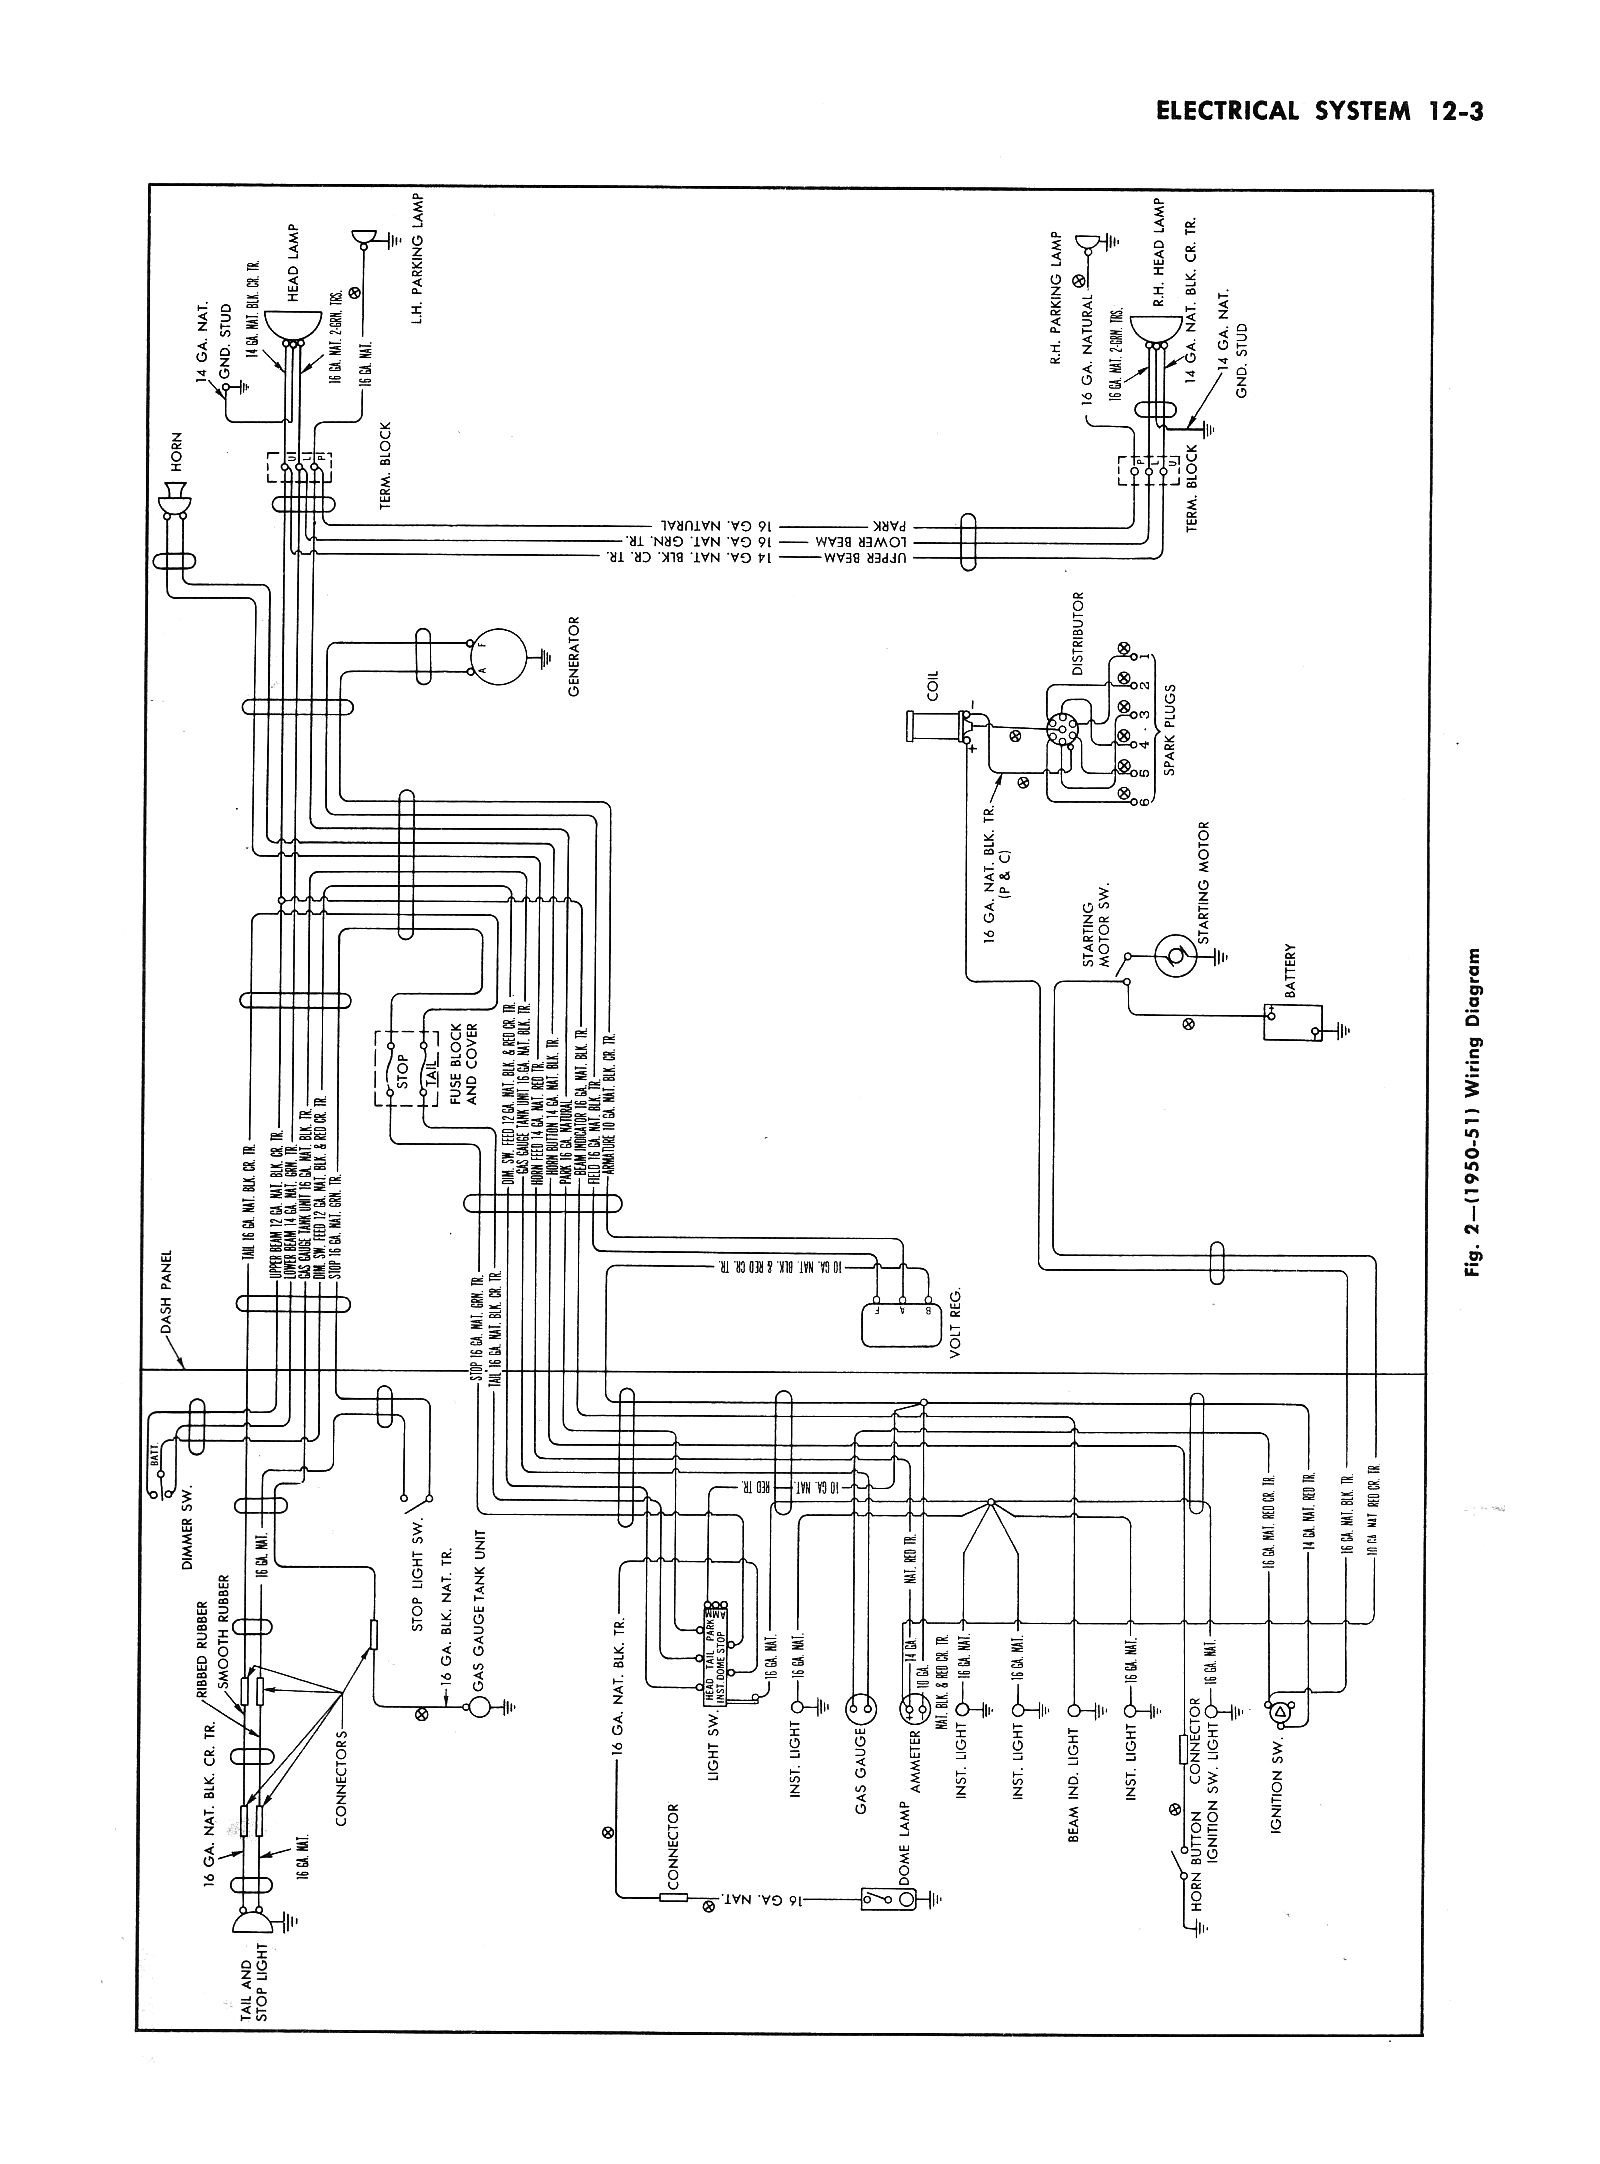 50ctsm1203 chevy wiring diagrams Ford Model T at bayanpartner.co